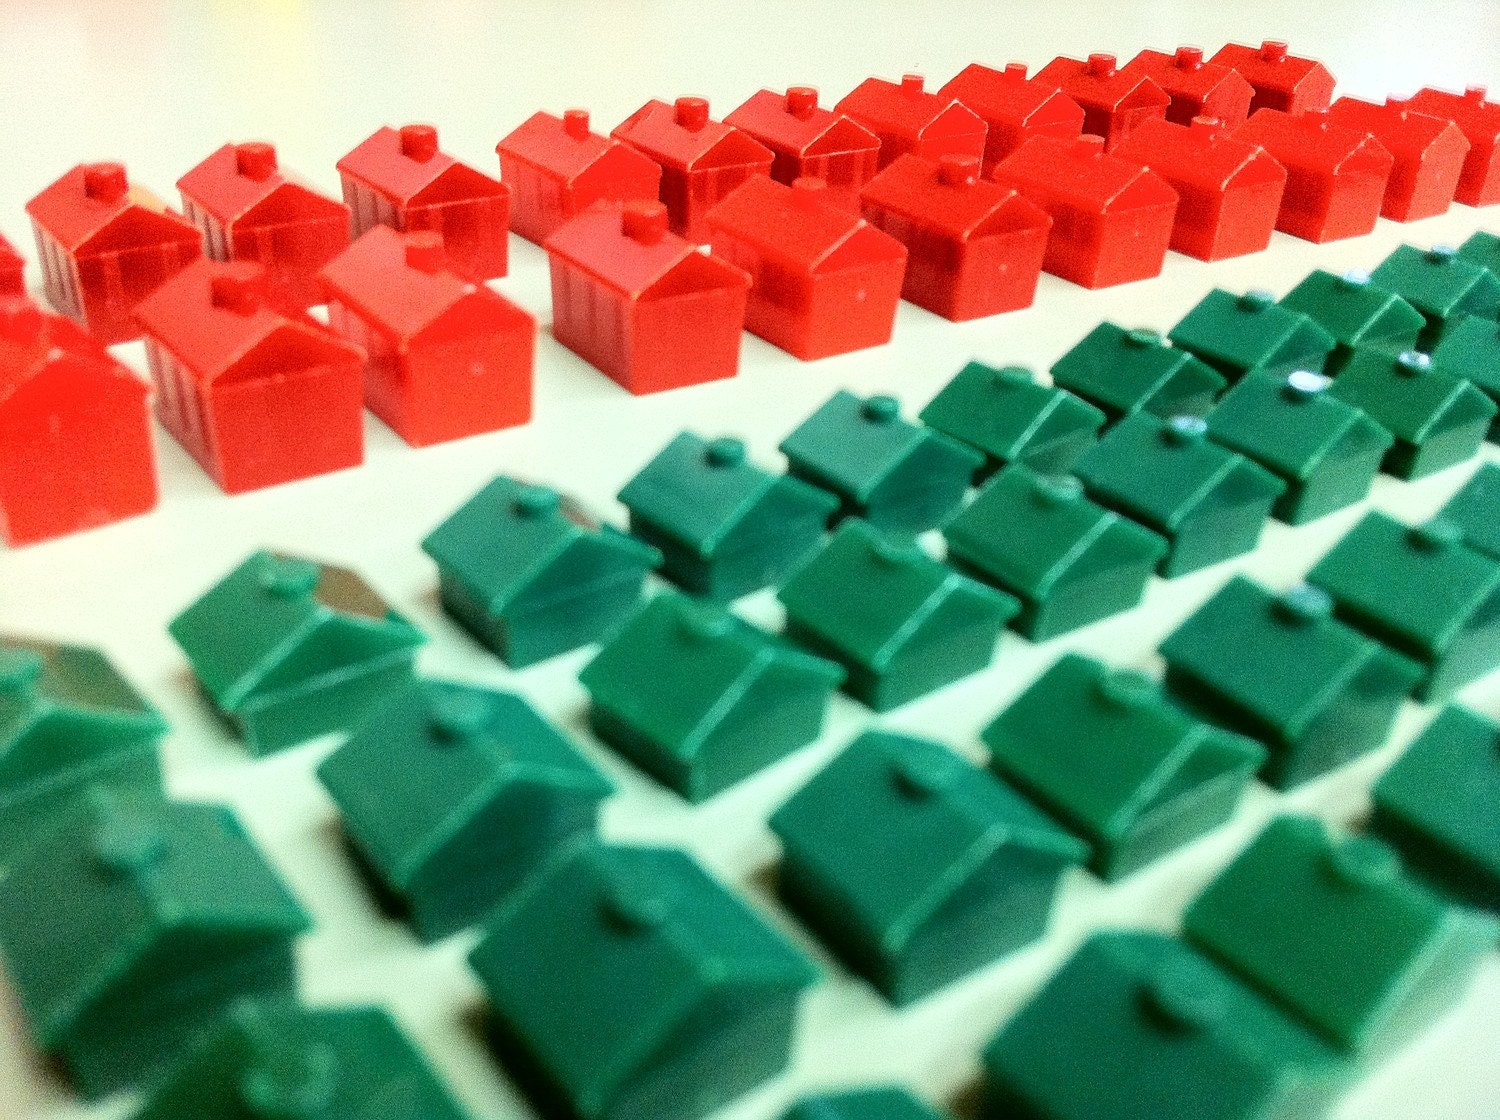 Vintage Monopoly game pieces houses and hotels by GamesEtCetera: https://www.etsy.com/listing/71186256/vintage-monopoly-game-pieces...